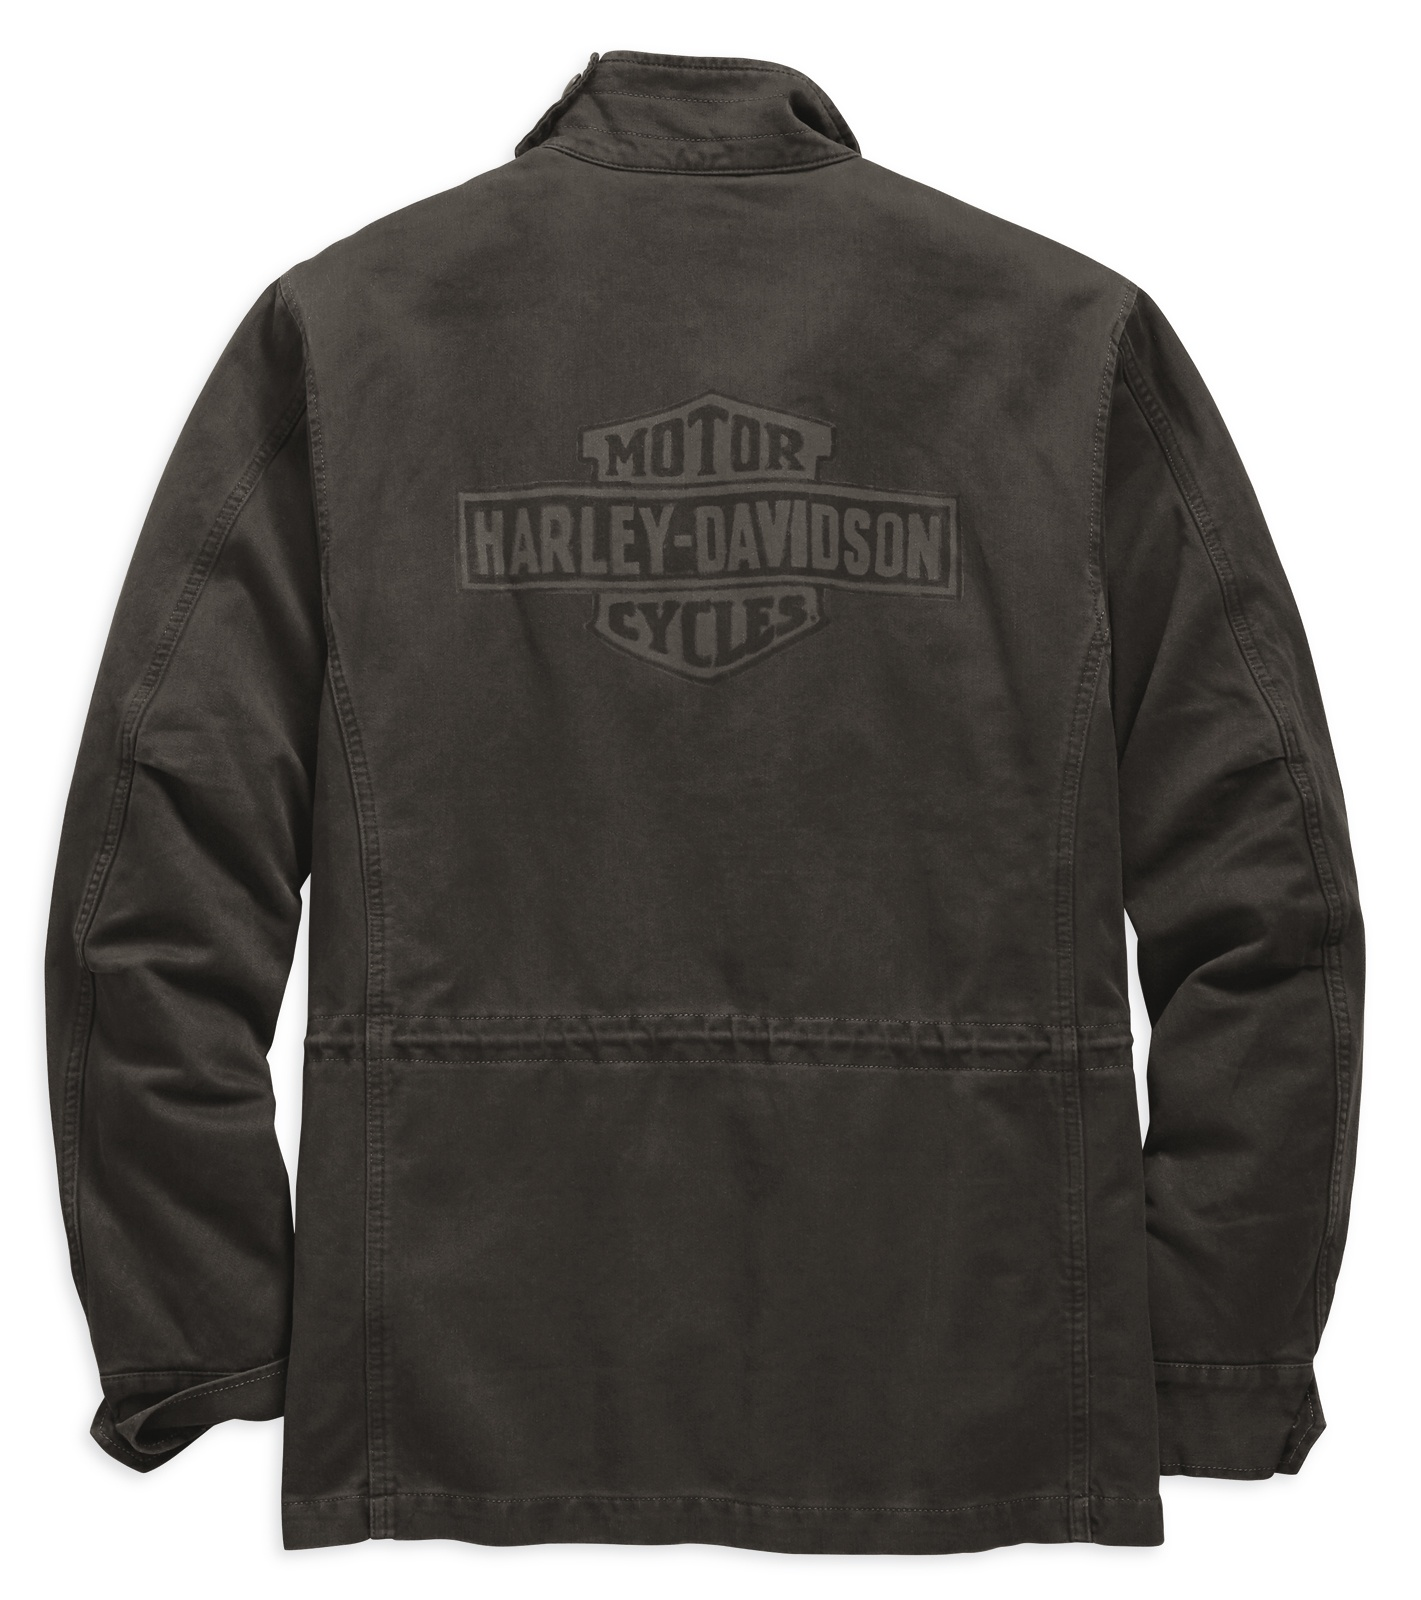 98594 19vm harley davidson field jacke im thunderbike shop. Black Bedroom Furniture Sets. Home Design Ideas